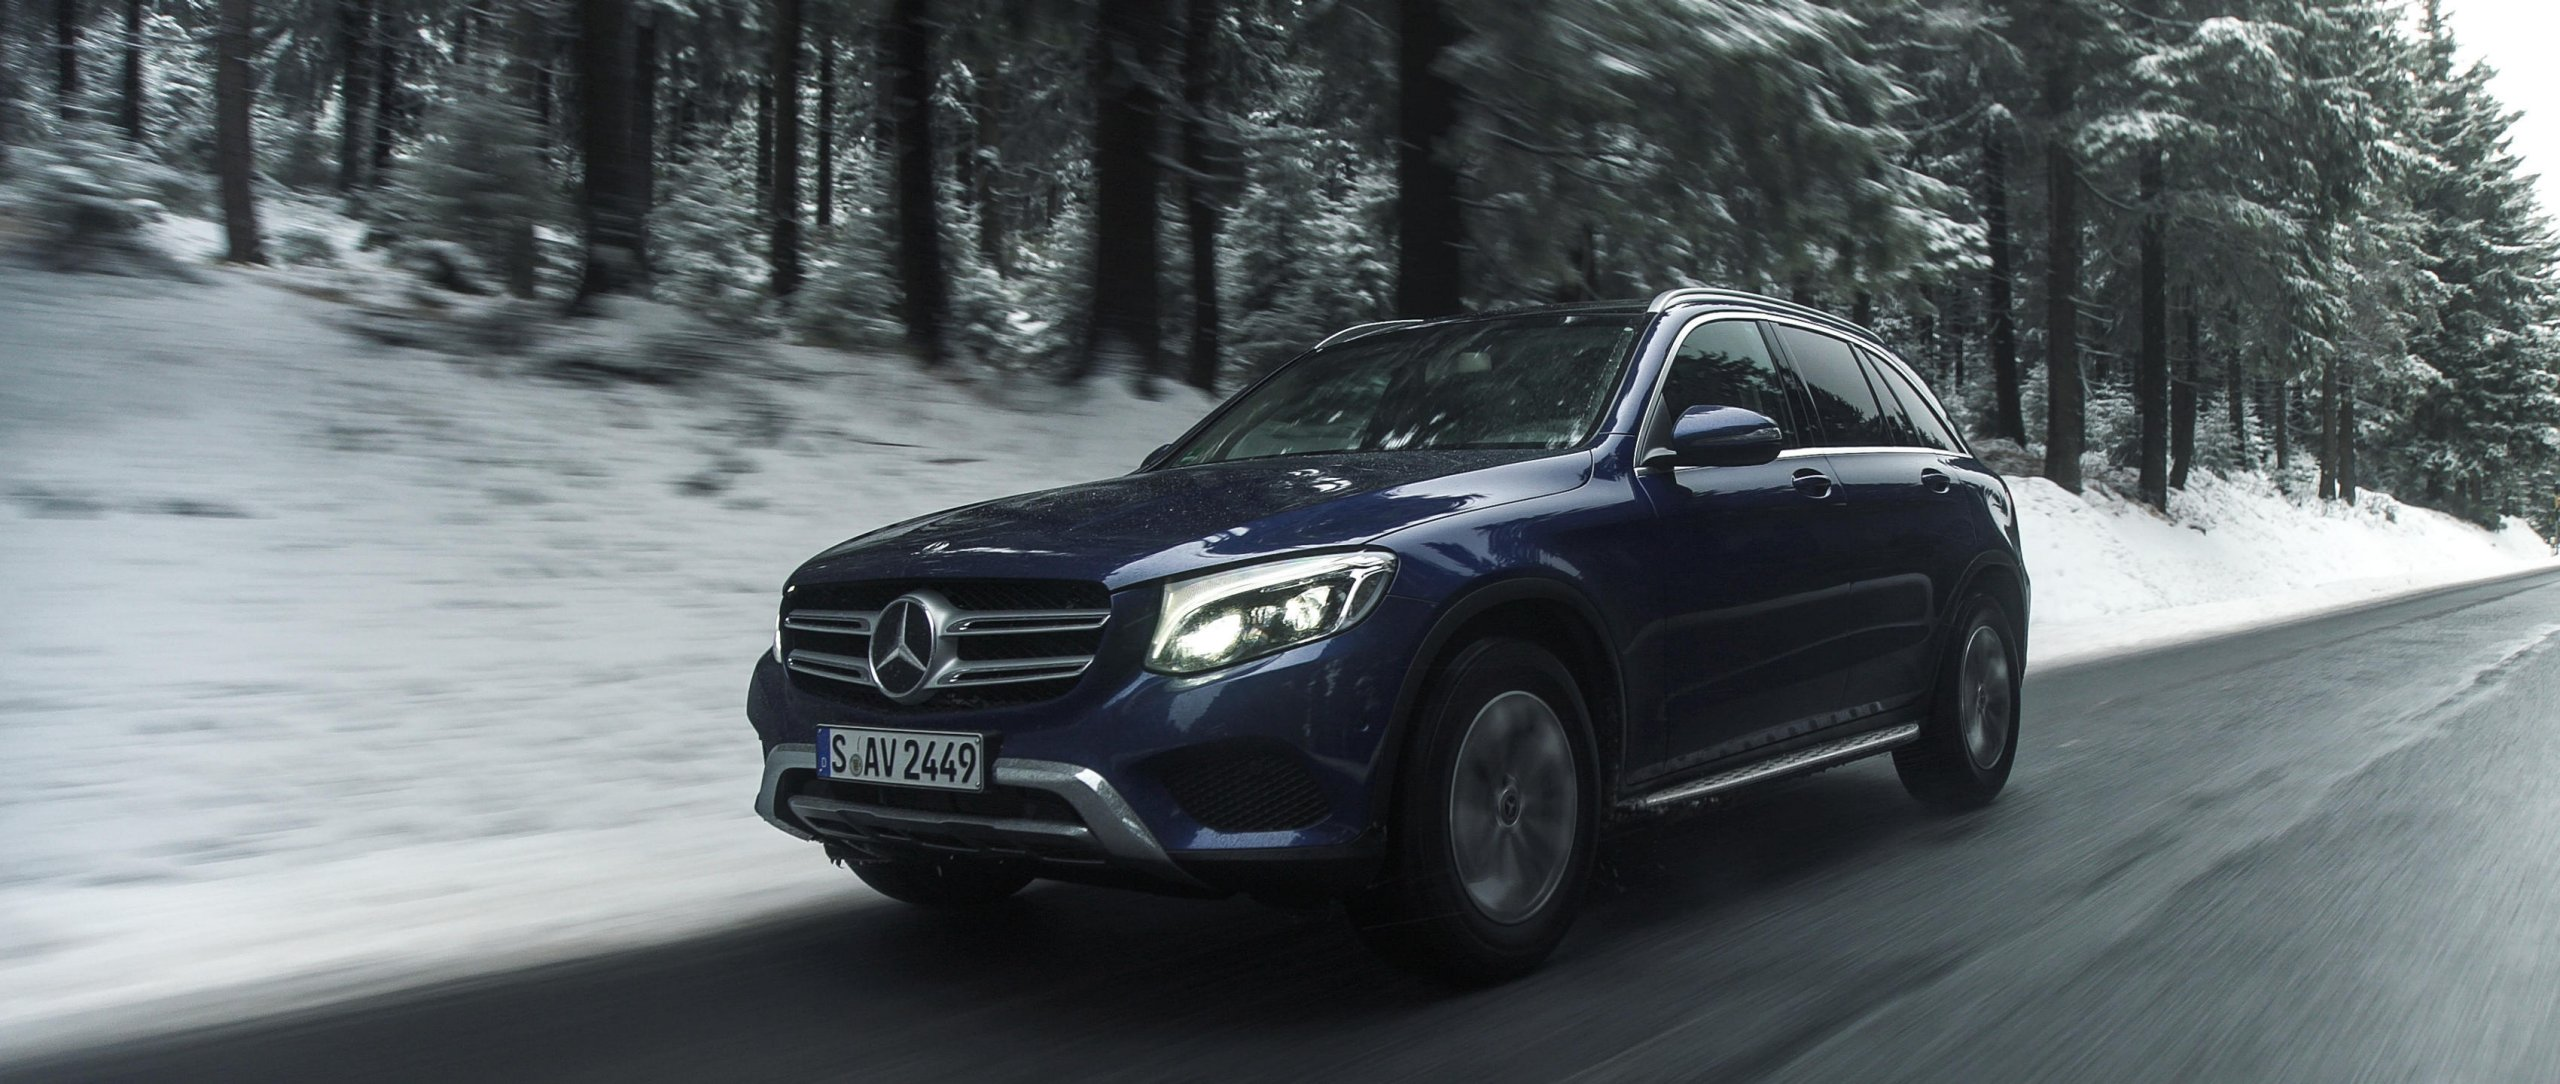 Mercedes-Benz #MBvideocar: GLC 250 4MATIC